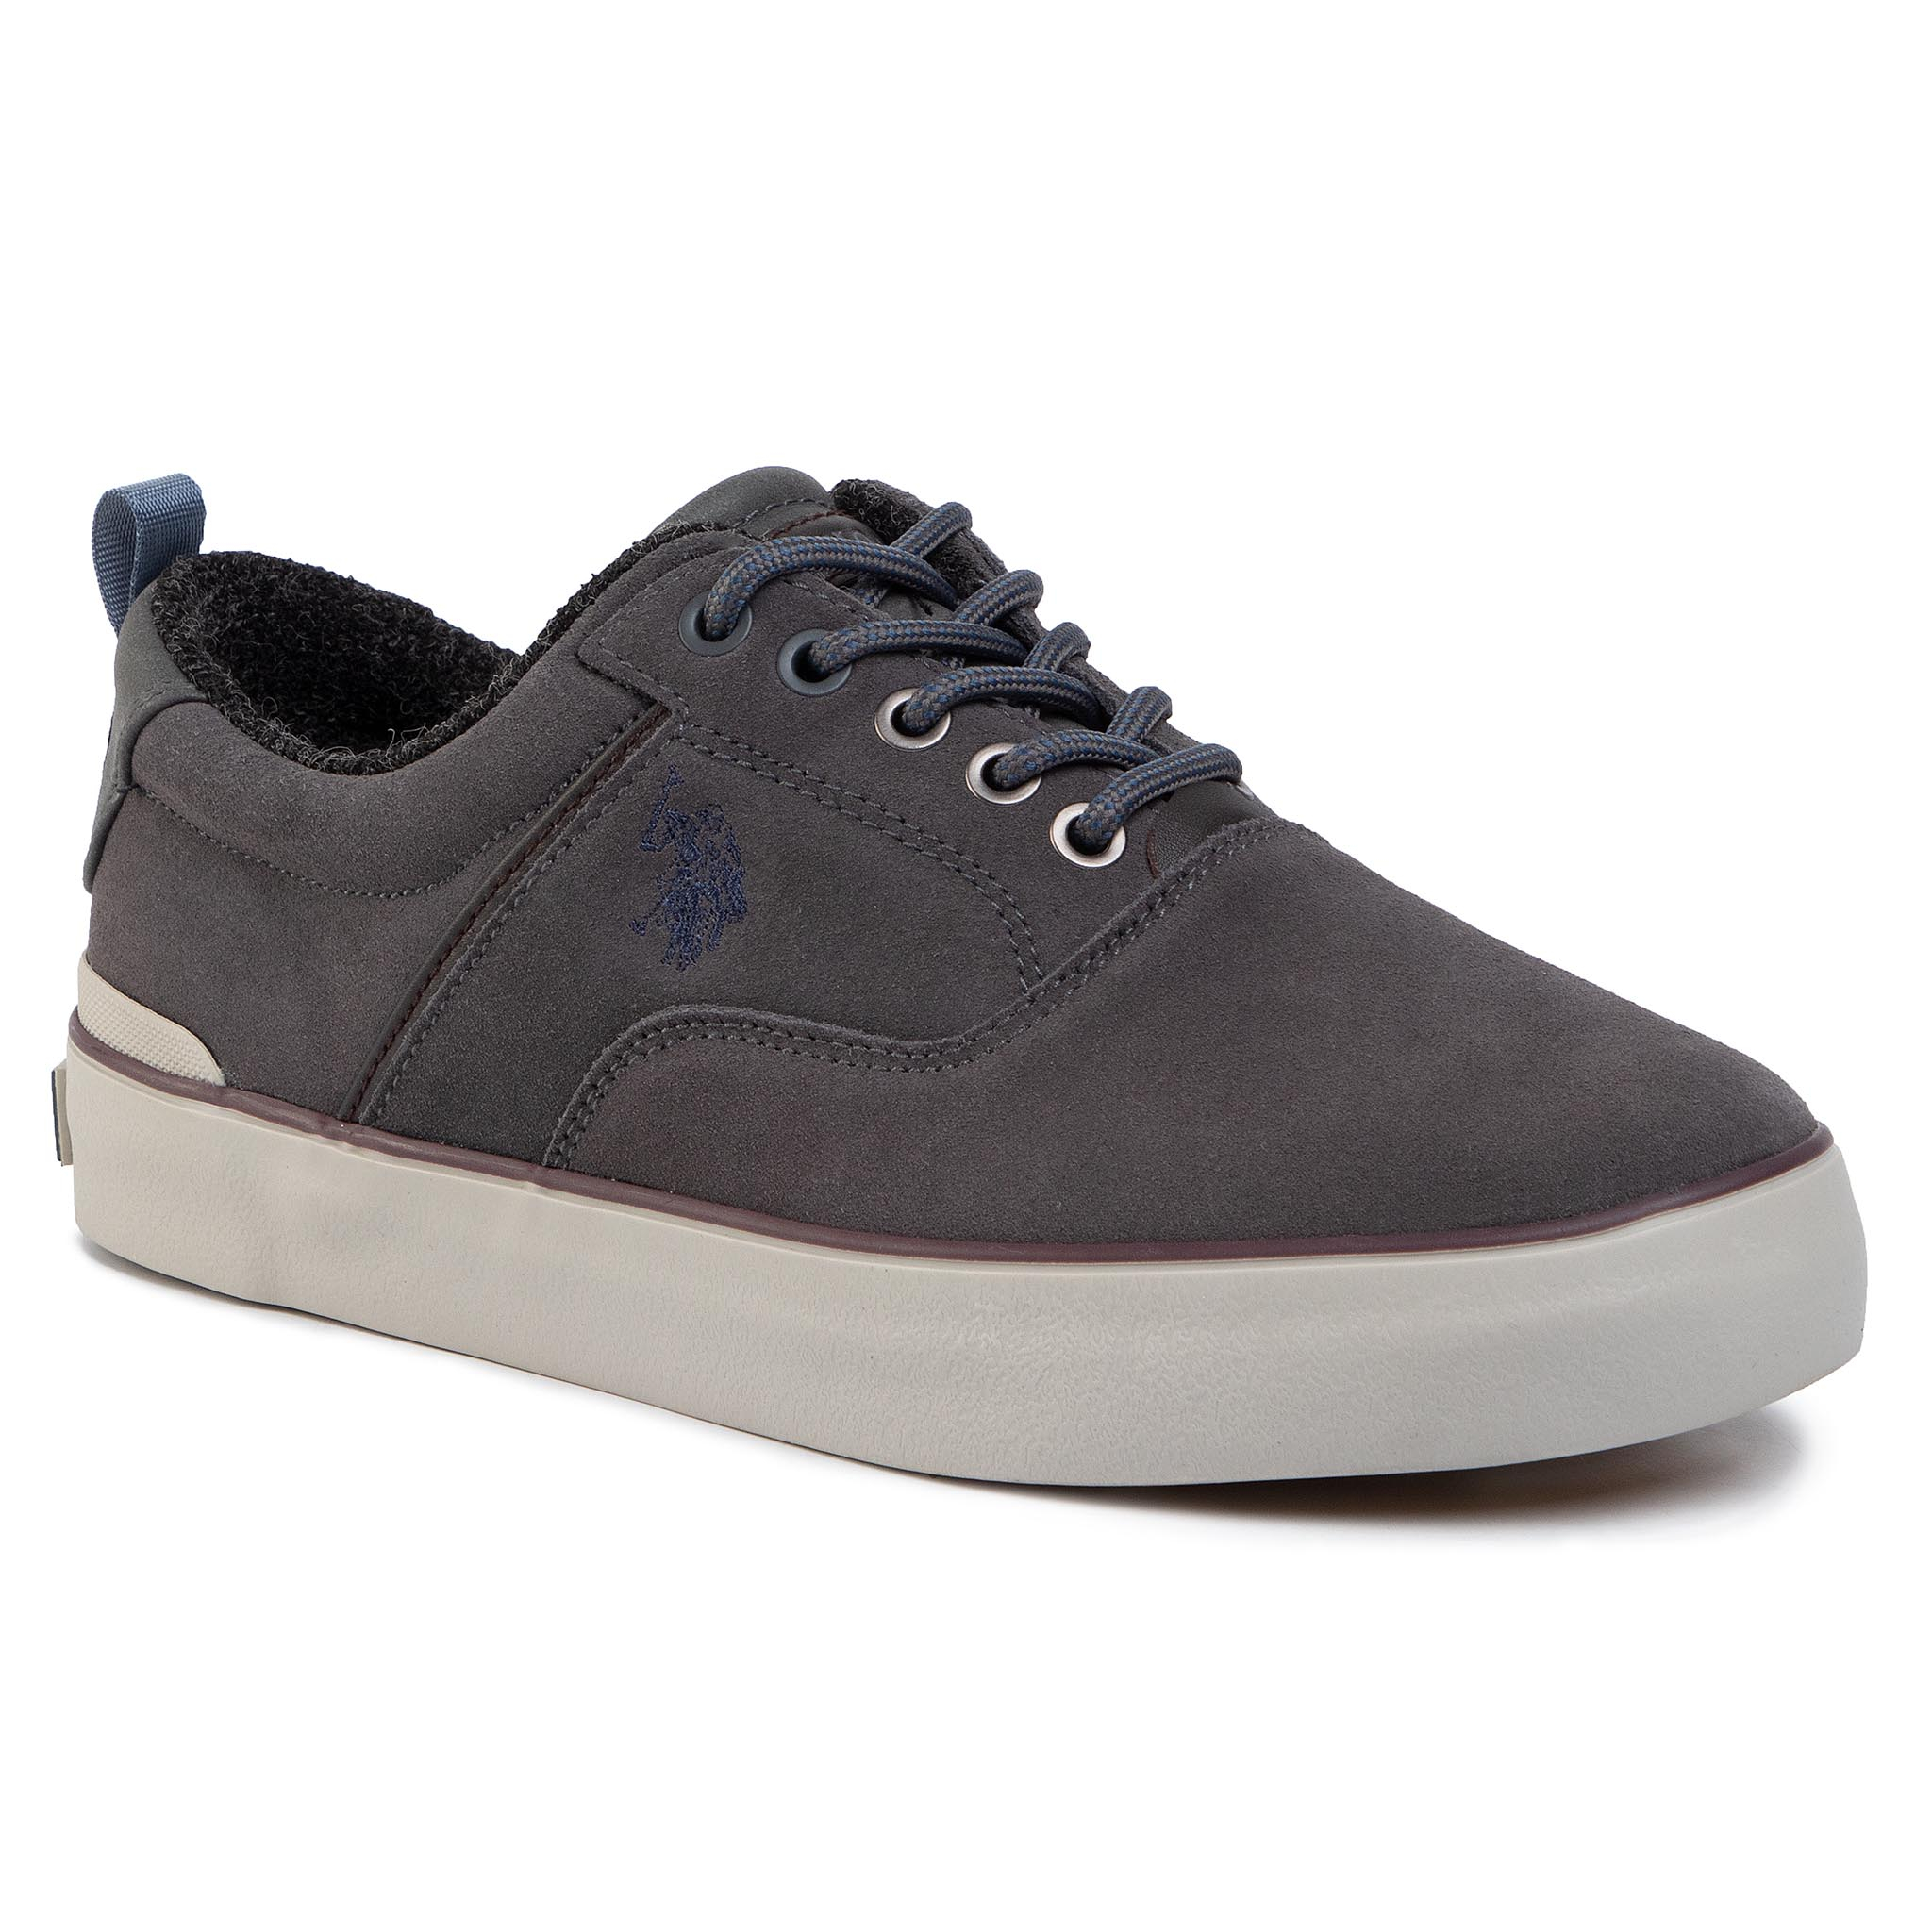 Sneakers U.S. POLO ASSN. - Tybalt ANSON7106W9/S1 Mdgr